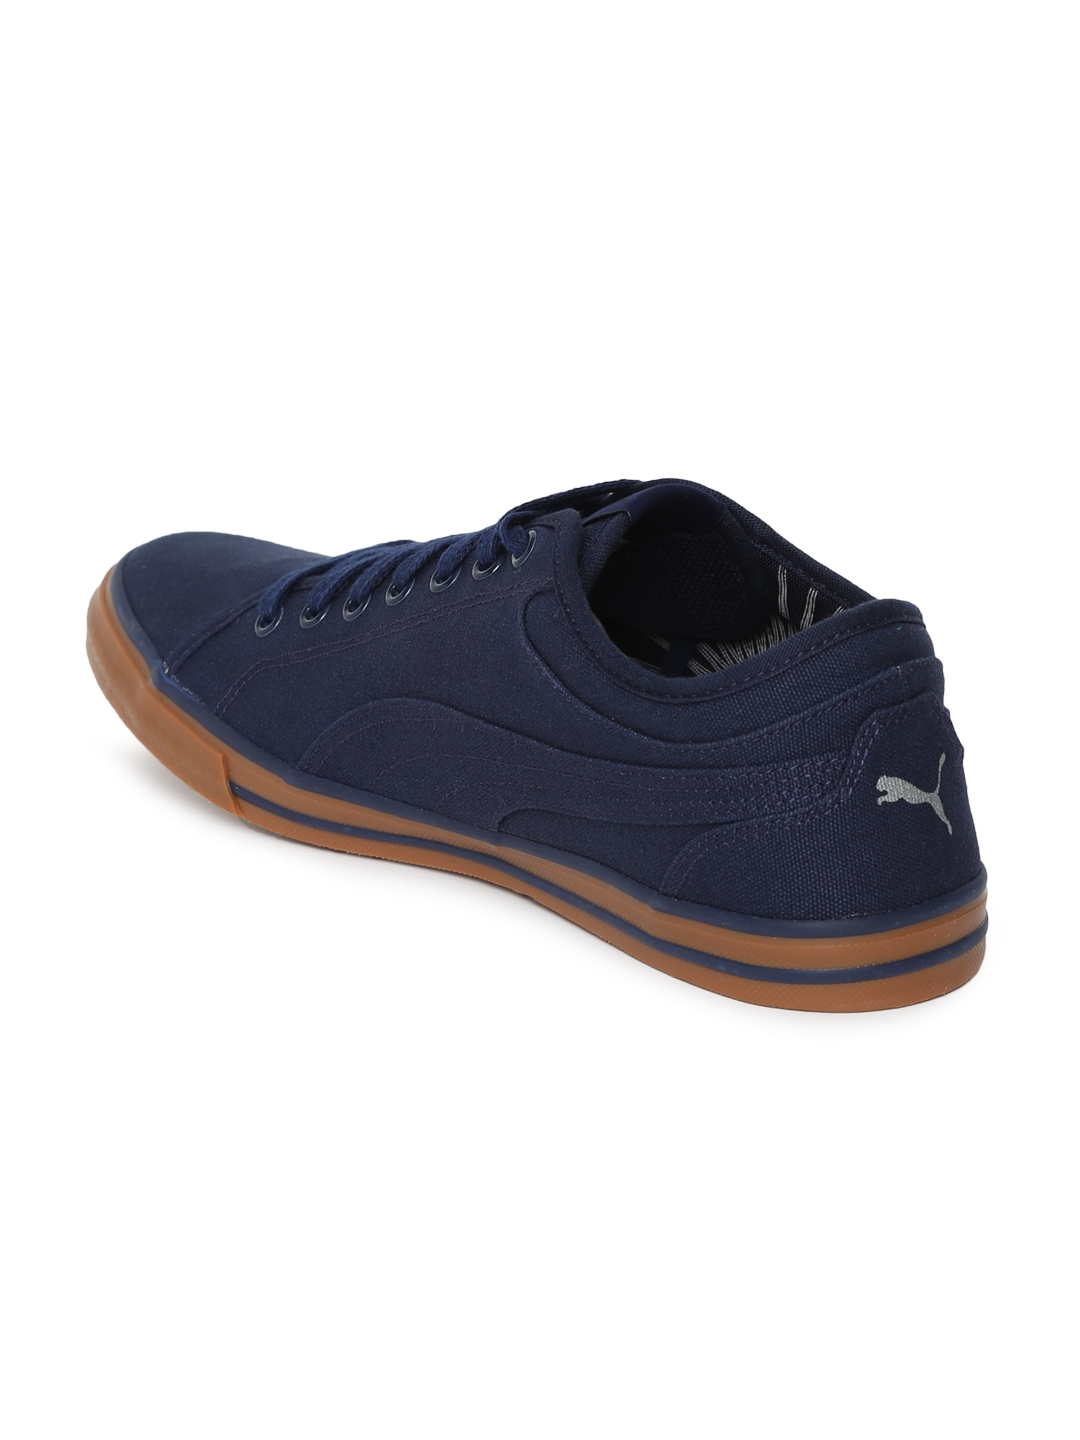 18ec8c2e3043 Buy Puma Unisex Navy Blue Yale Gum Solid IDP Sneakers - Casual Shoes ...